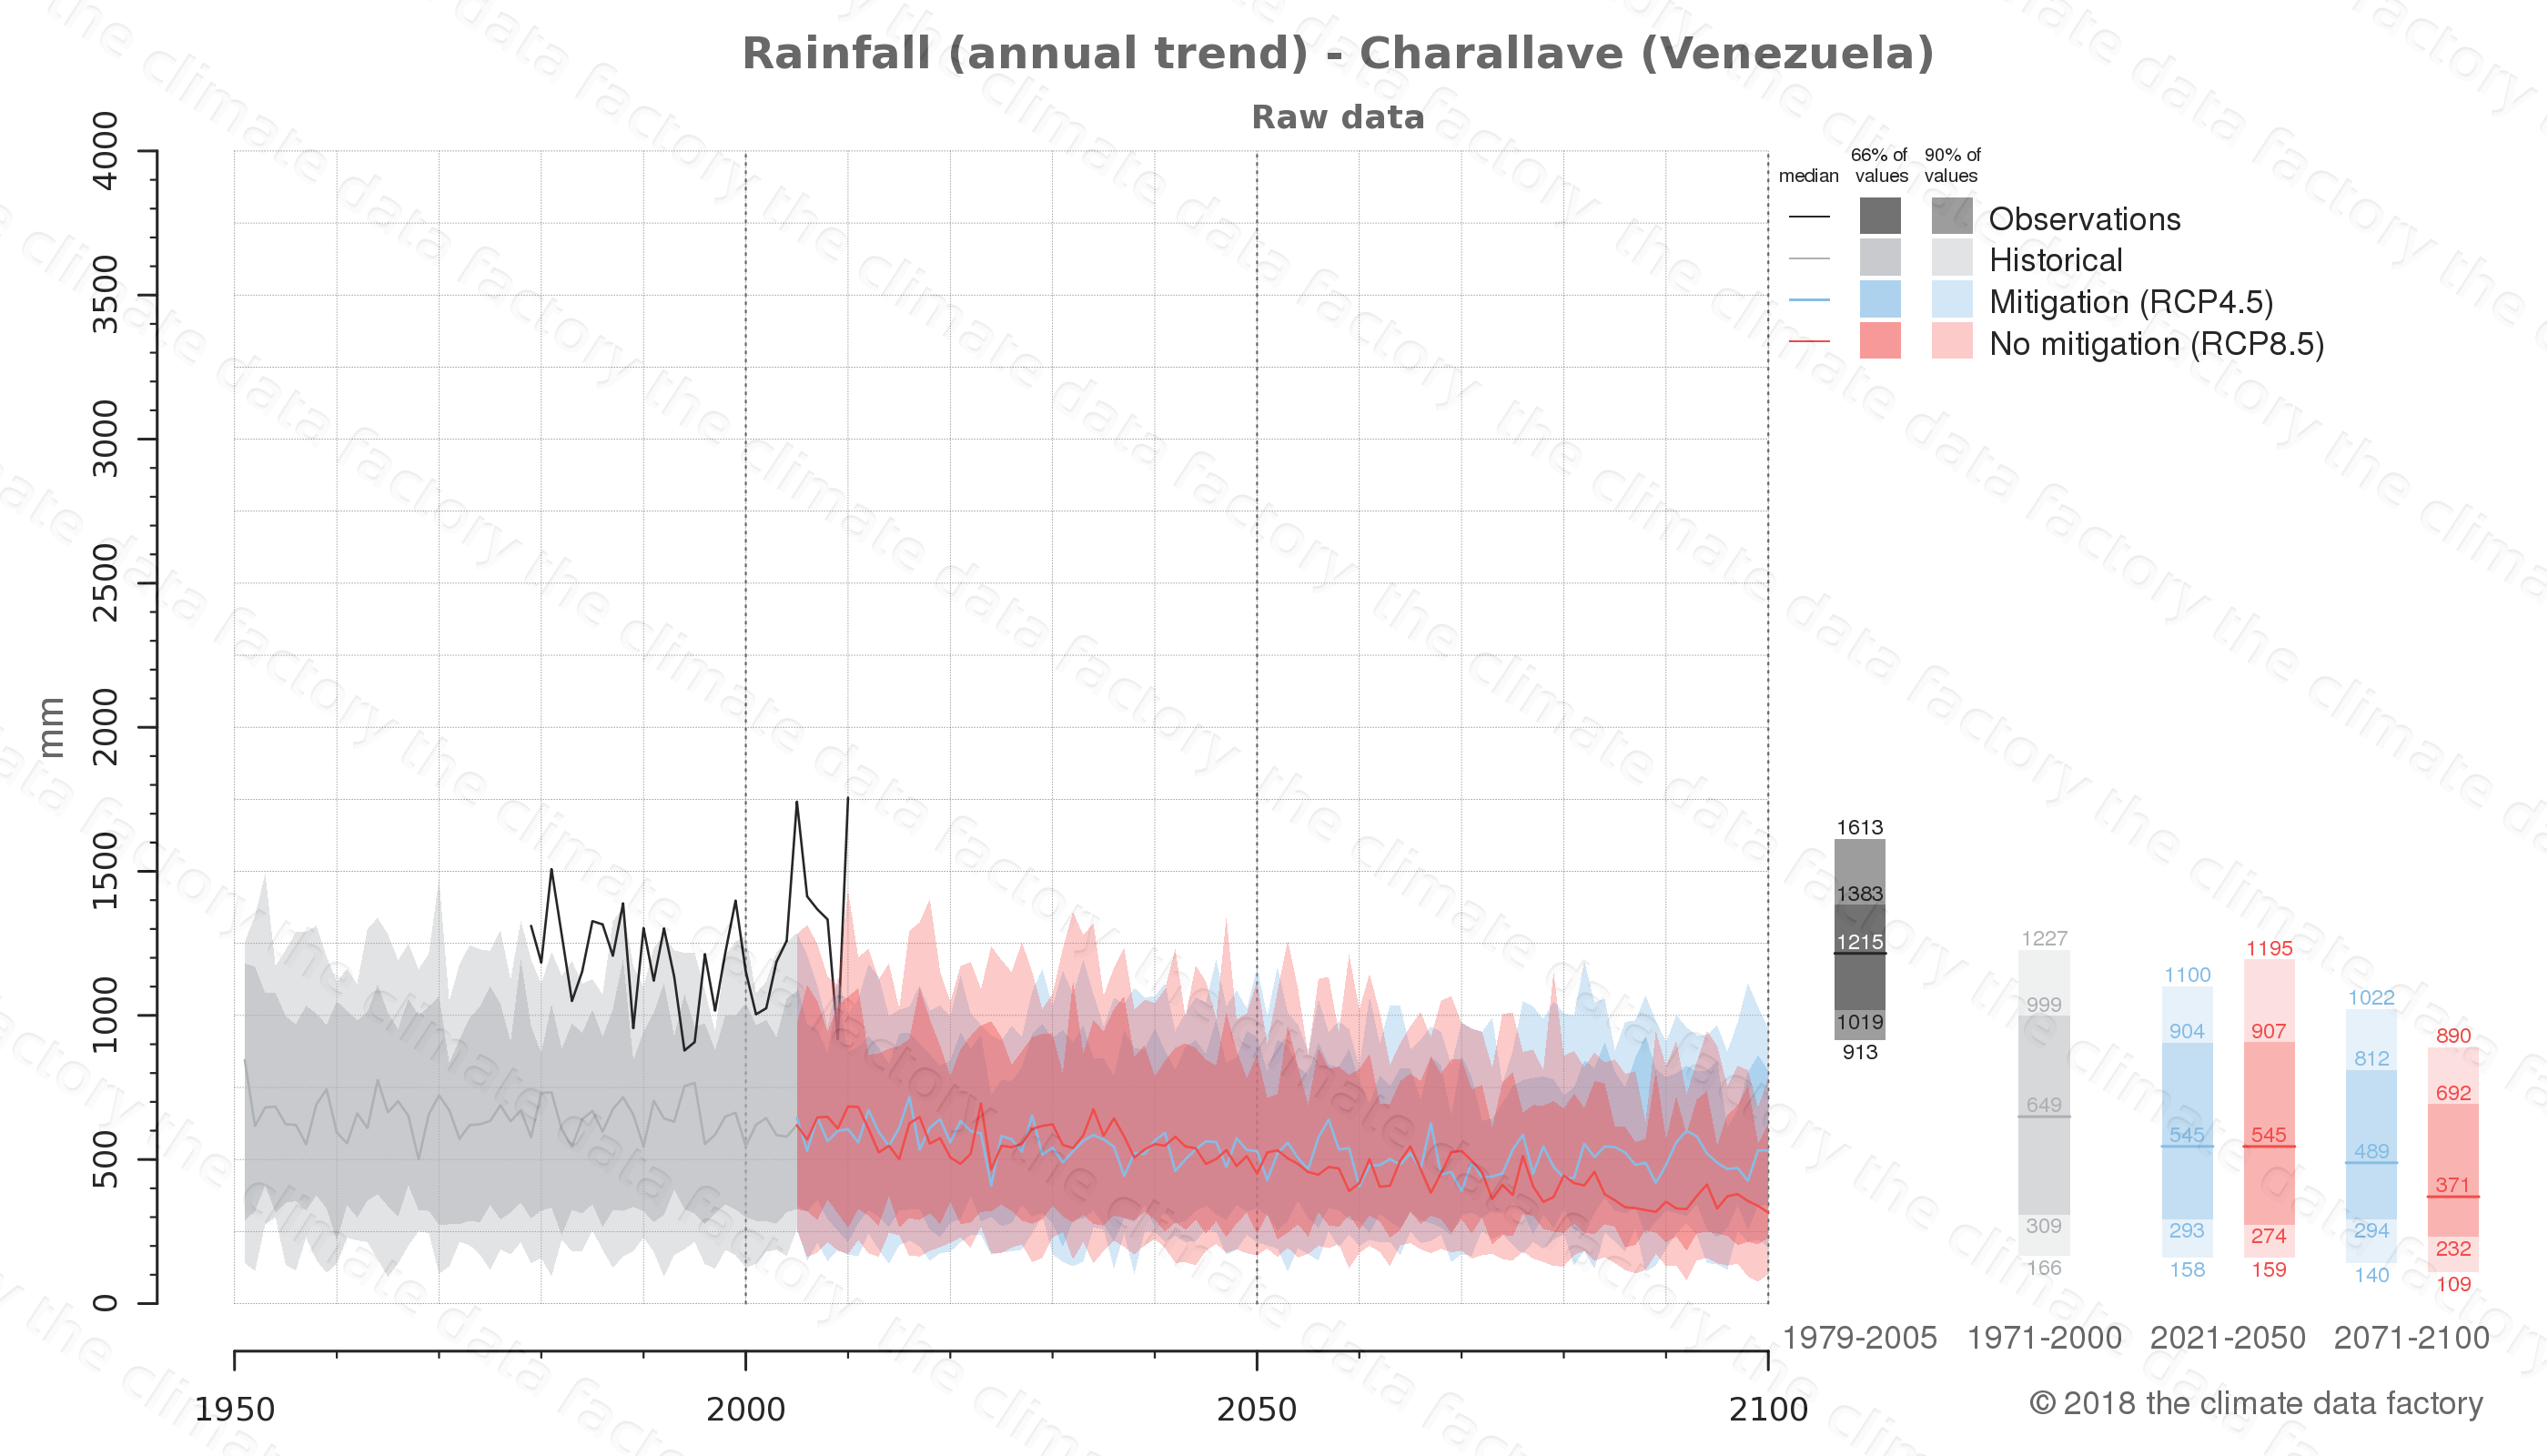 climate change data policy adaptation climate graph city data rainfall charallave venezuela